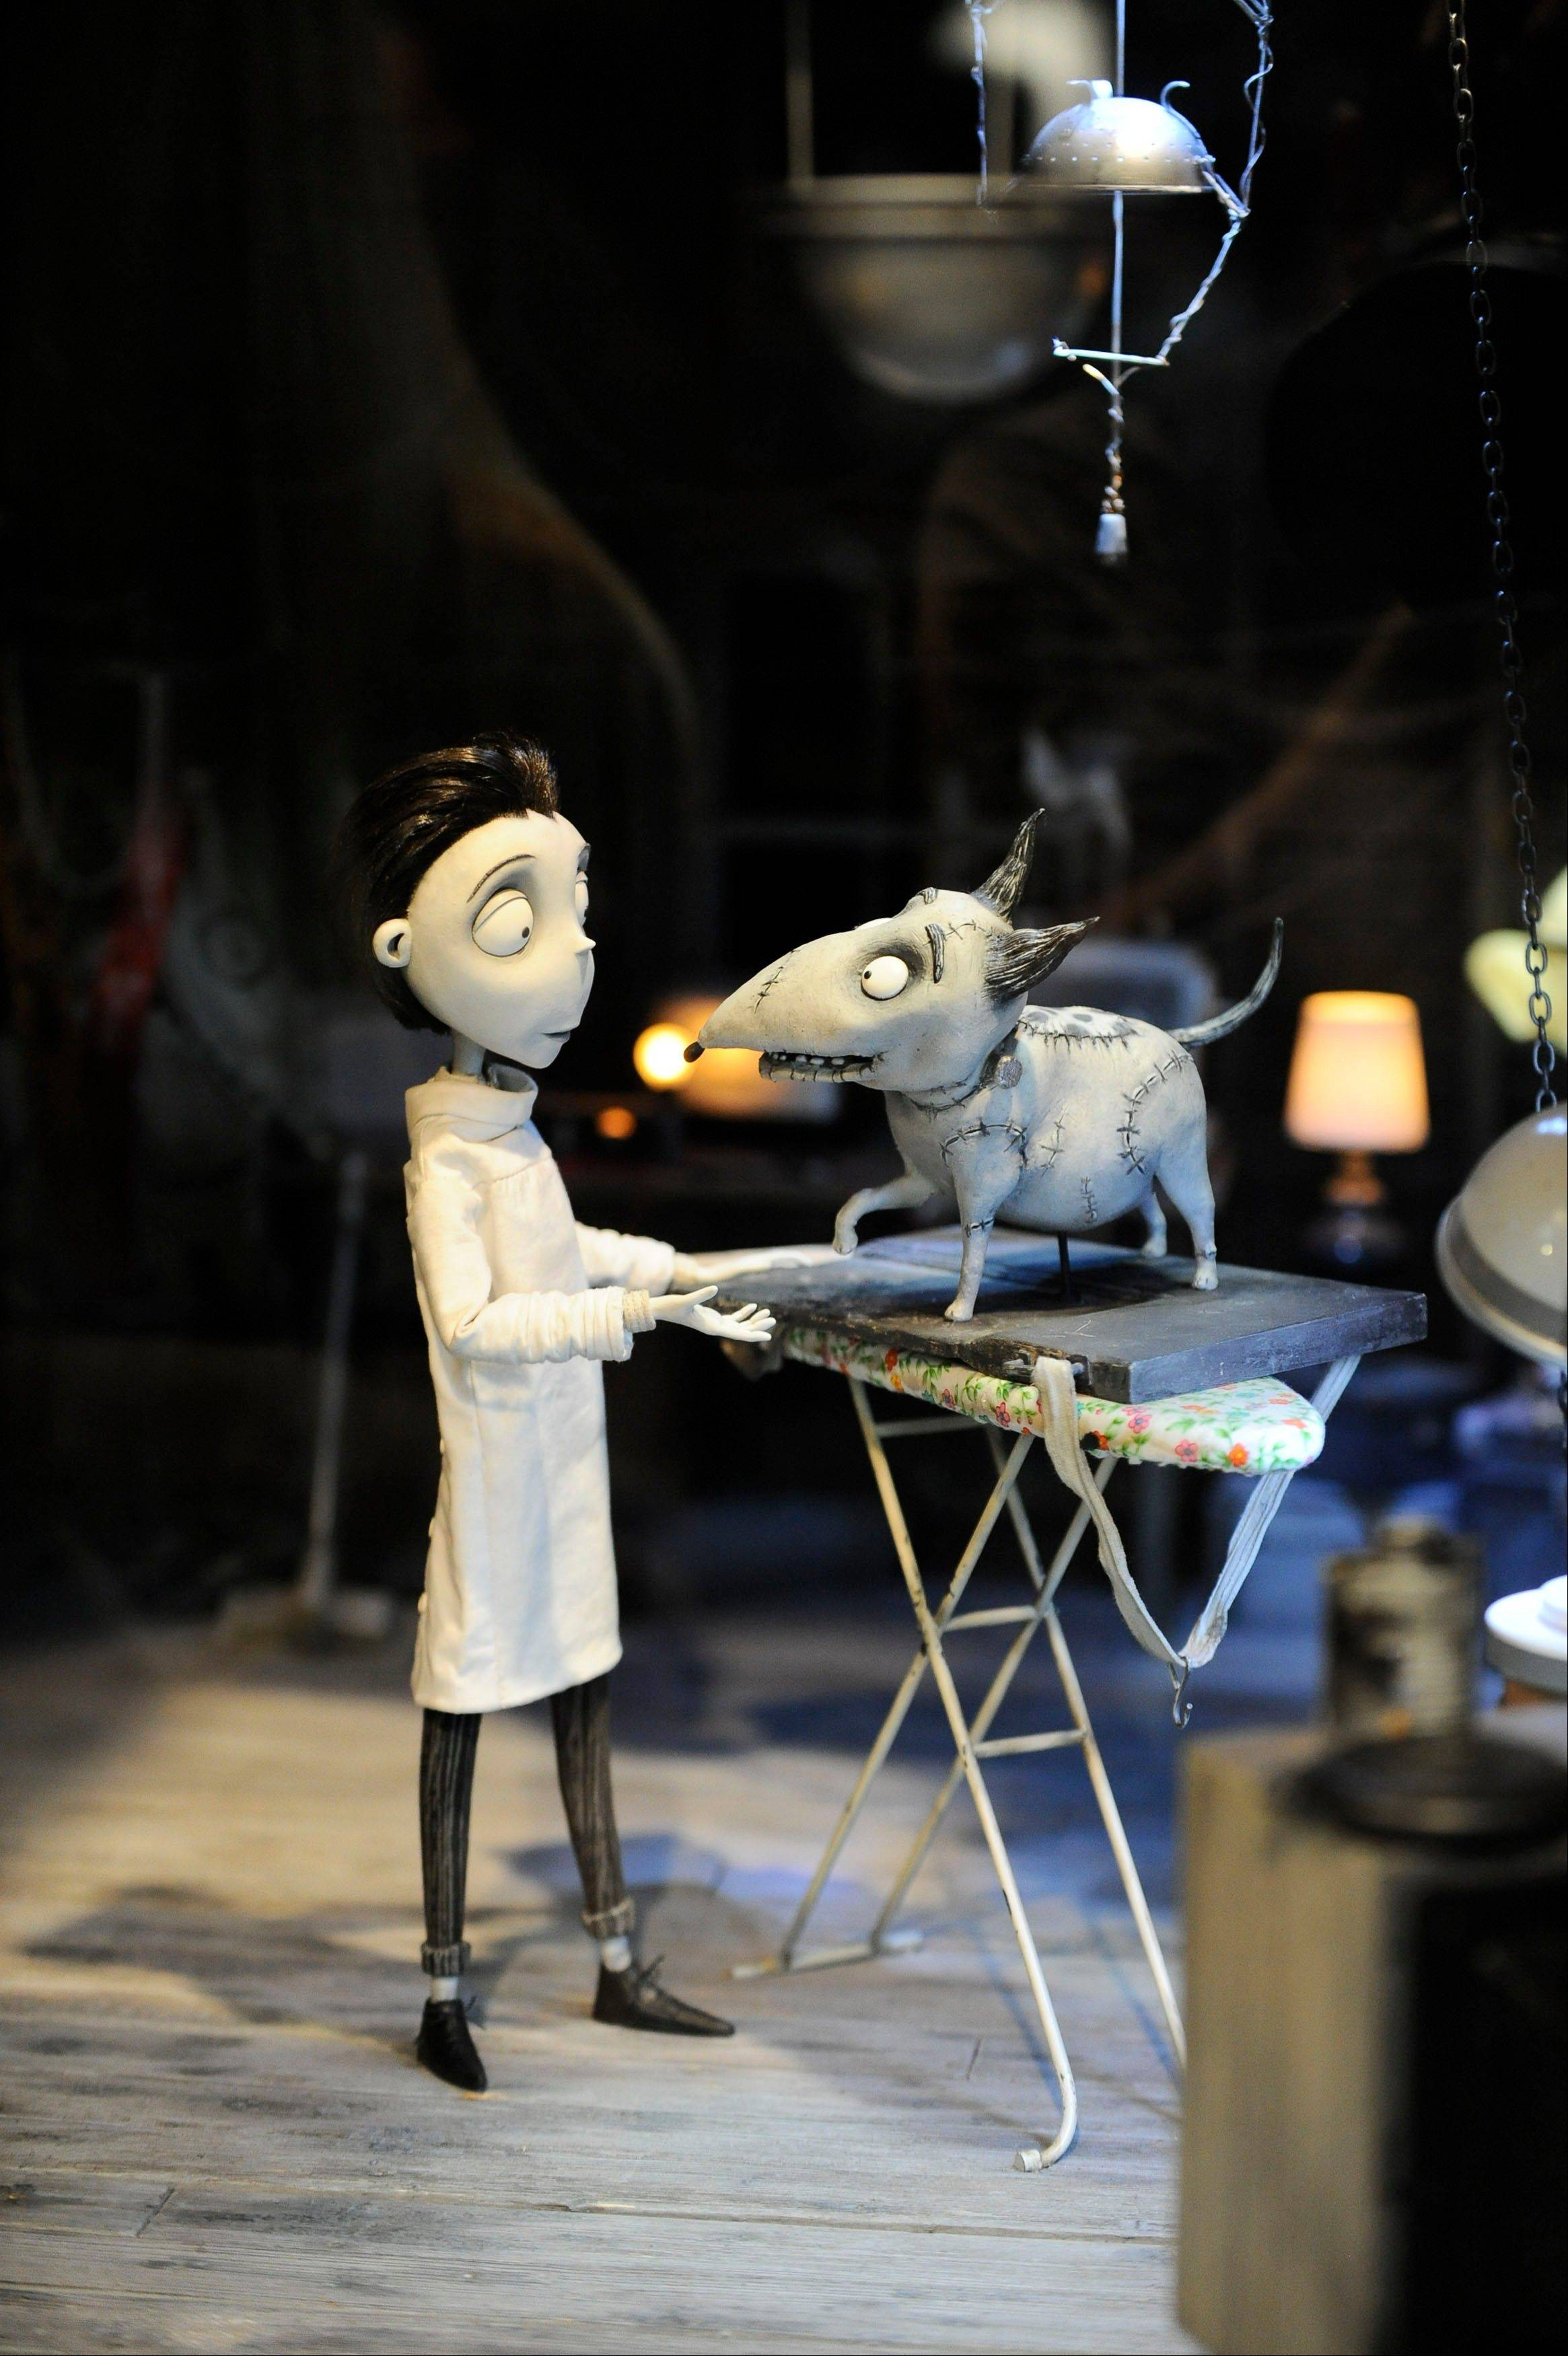 'Frankenweenie' joins reanimation of stop-motion